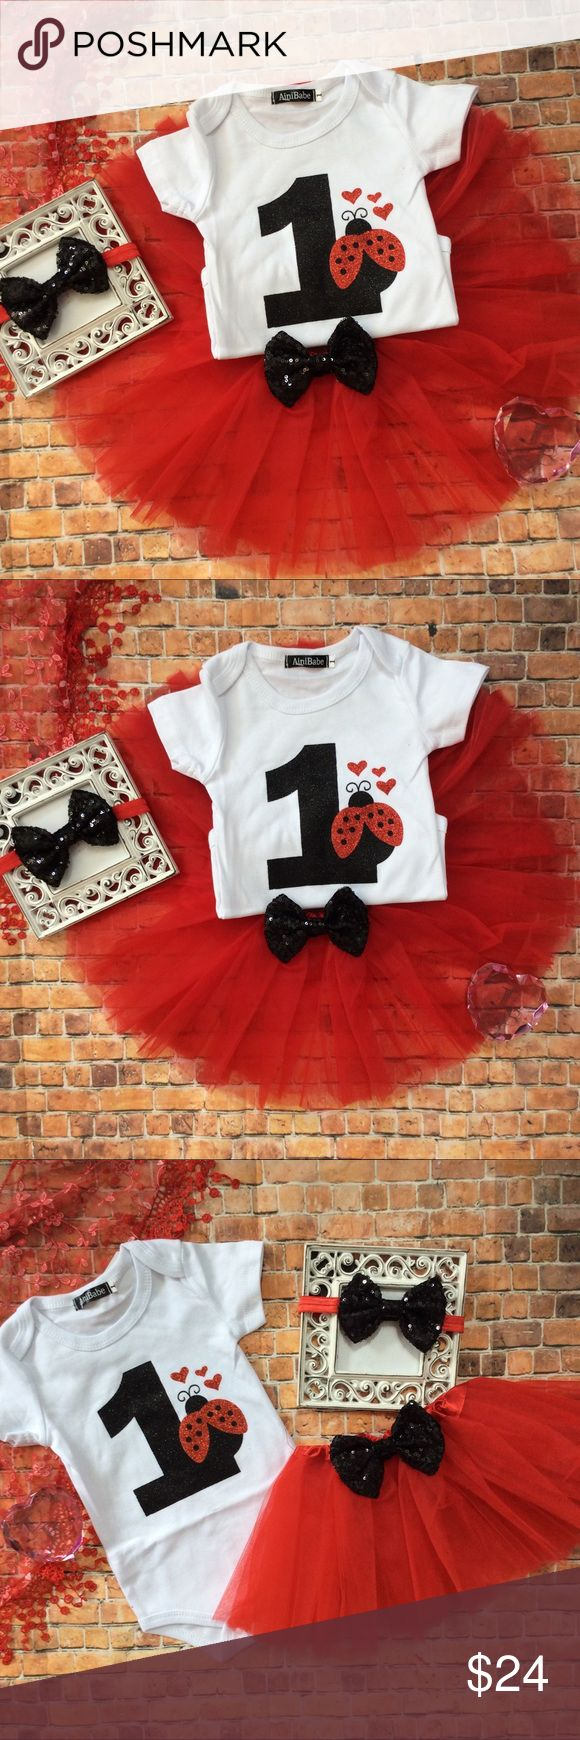 Boutique Baby Girl Lady Bug 1st Birthday Outfit Vivid and colorful Baby Girl 1st Birthday Red & Black Ladybug themed 1st Birthday Tutu 3pc Outfit. Includes white short sleeve onesie with Glitzy black and red 1 & ladybug to front. Full red Tutu skirt with black sequin bow to front. Includes a red and black sequin headband. Super cute for cake smash photos and birthday party!! Dresses